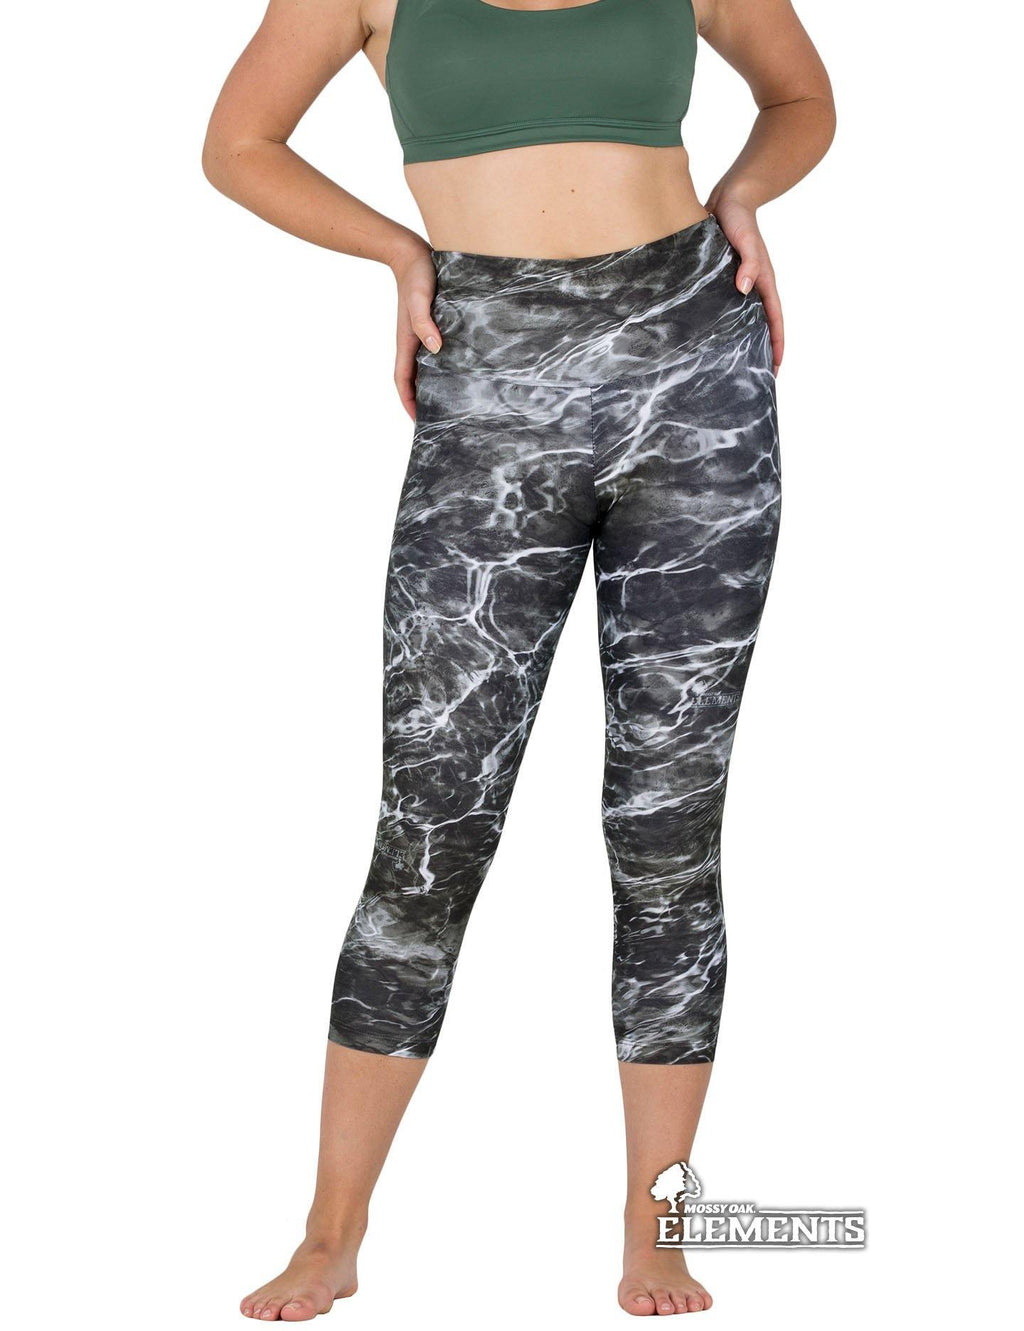 Apsara Leggings High Waist Capri, Mossy Oak Elements Blacktip